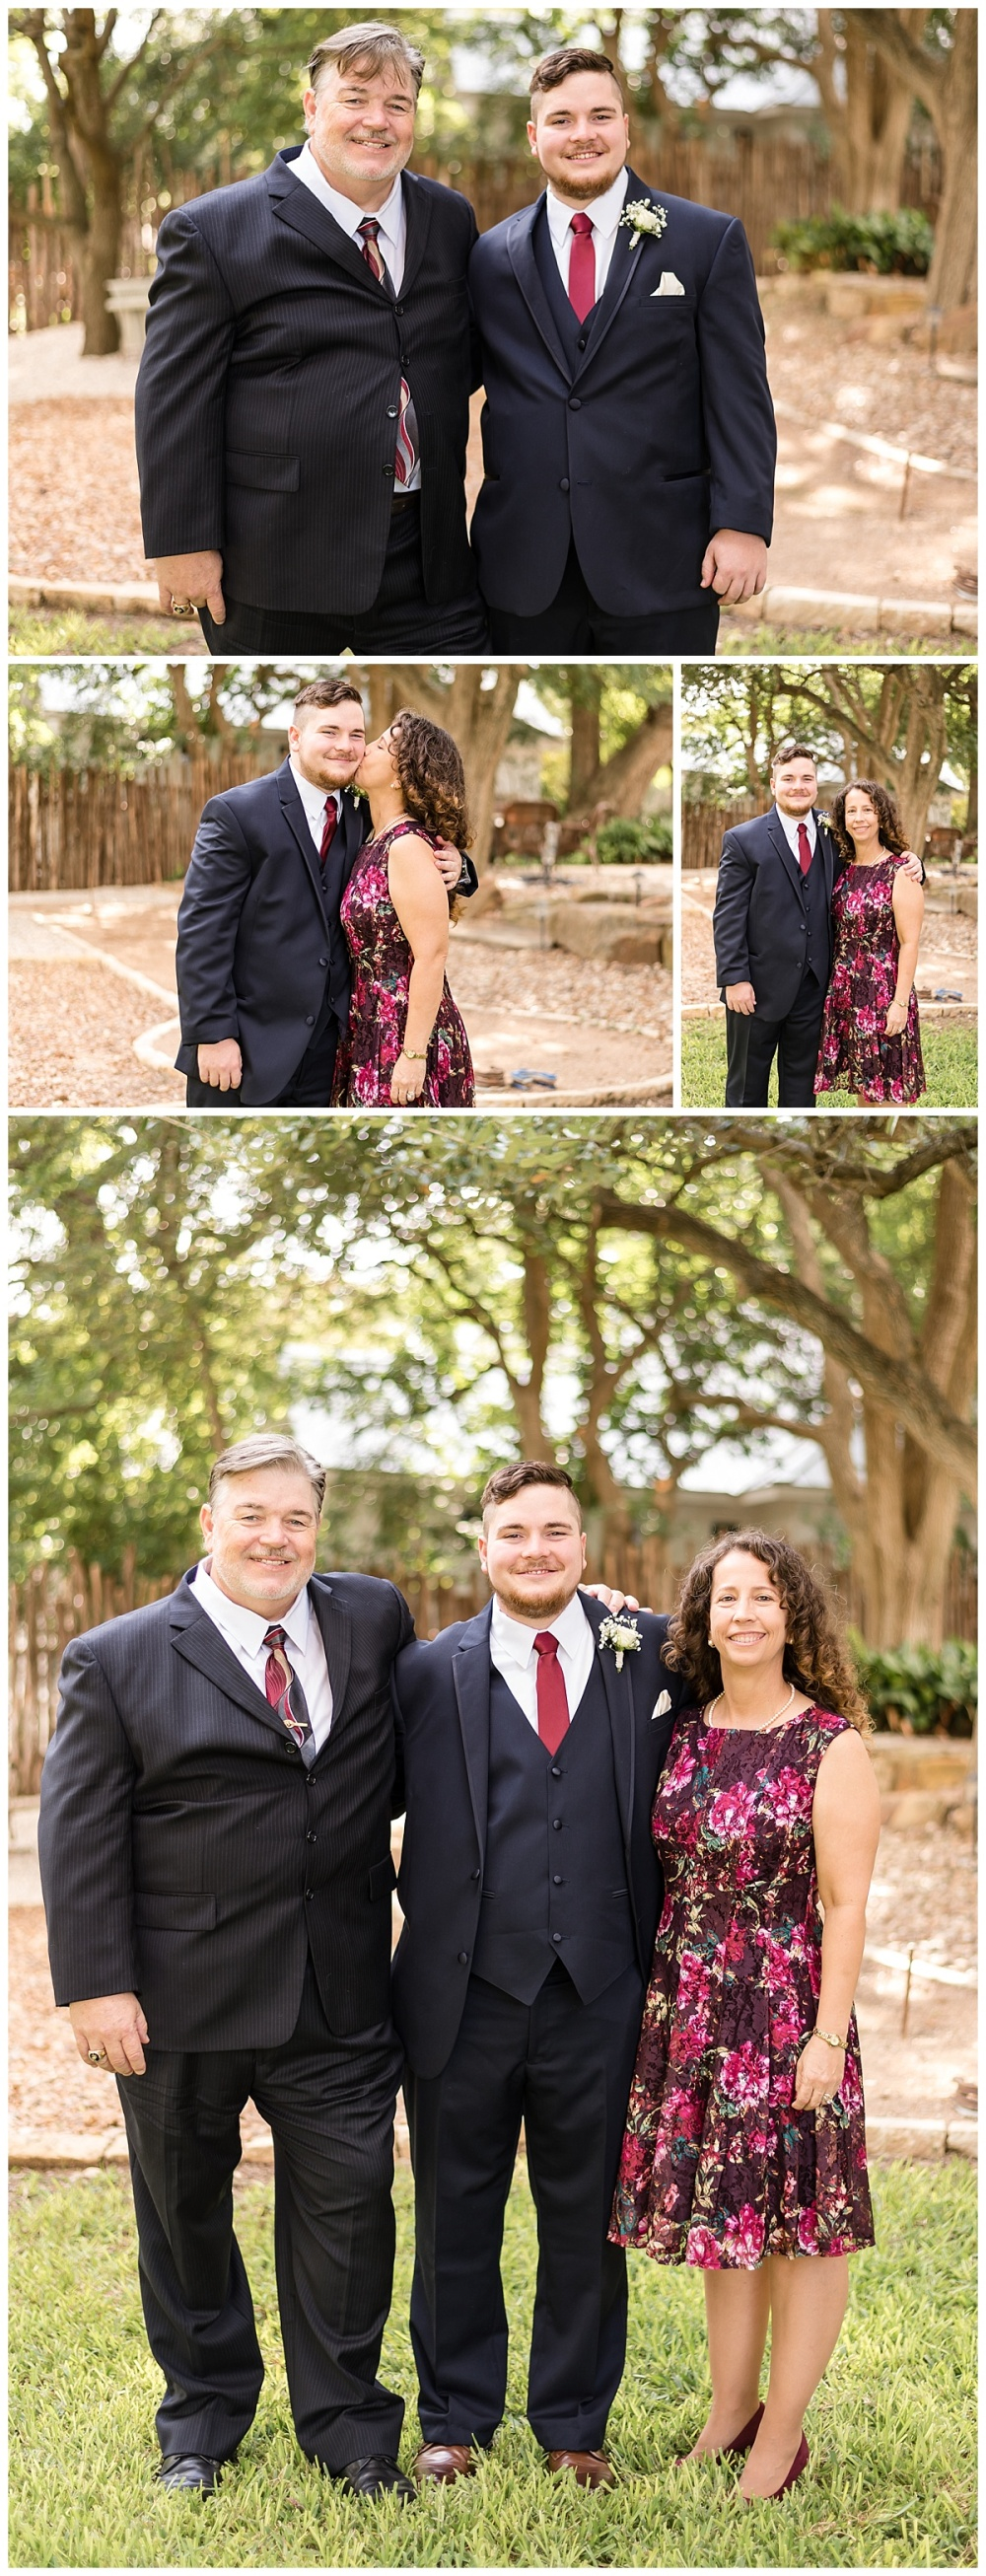 Texas-Wedding-Photographer-Gruene-Estate-Open-Air-Chapel-Carly-Barton-Photography-Katie-Nic_0041.jpg